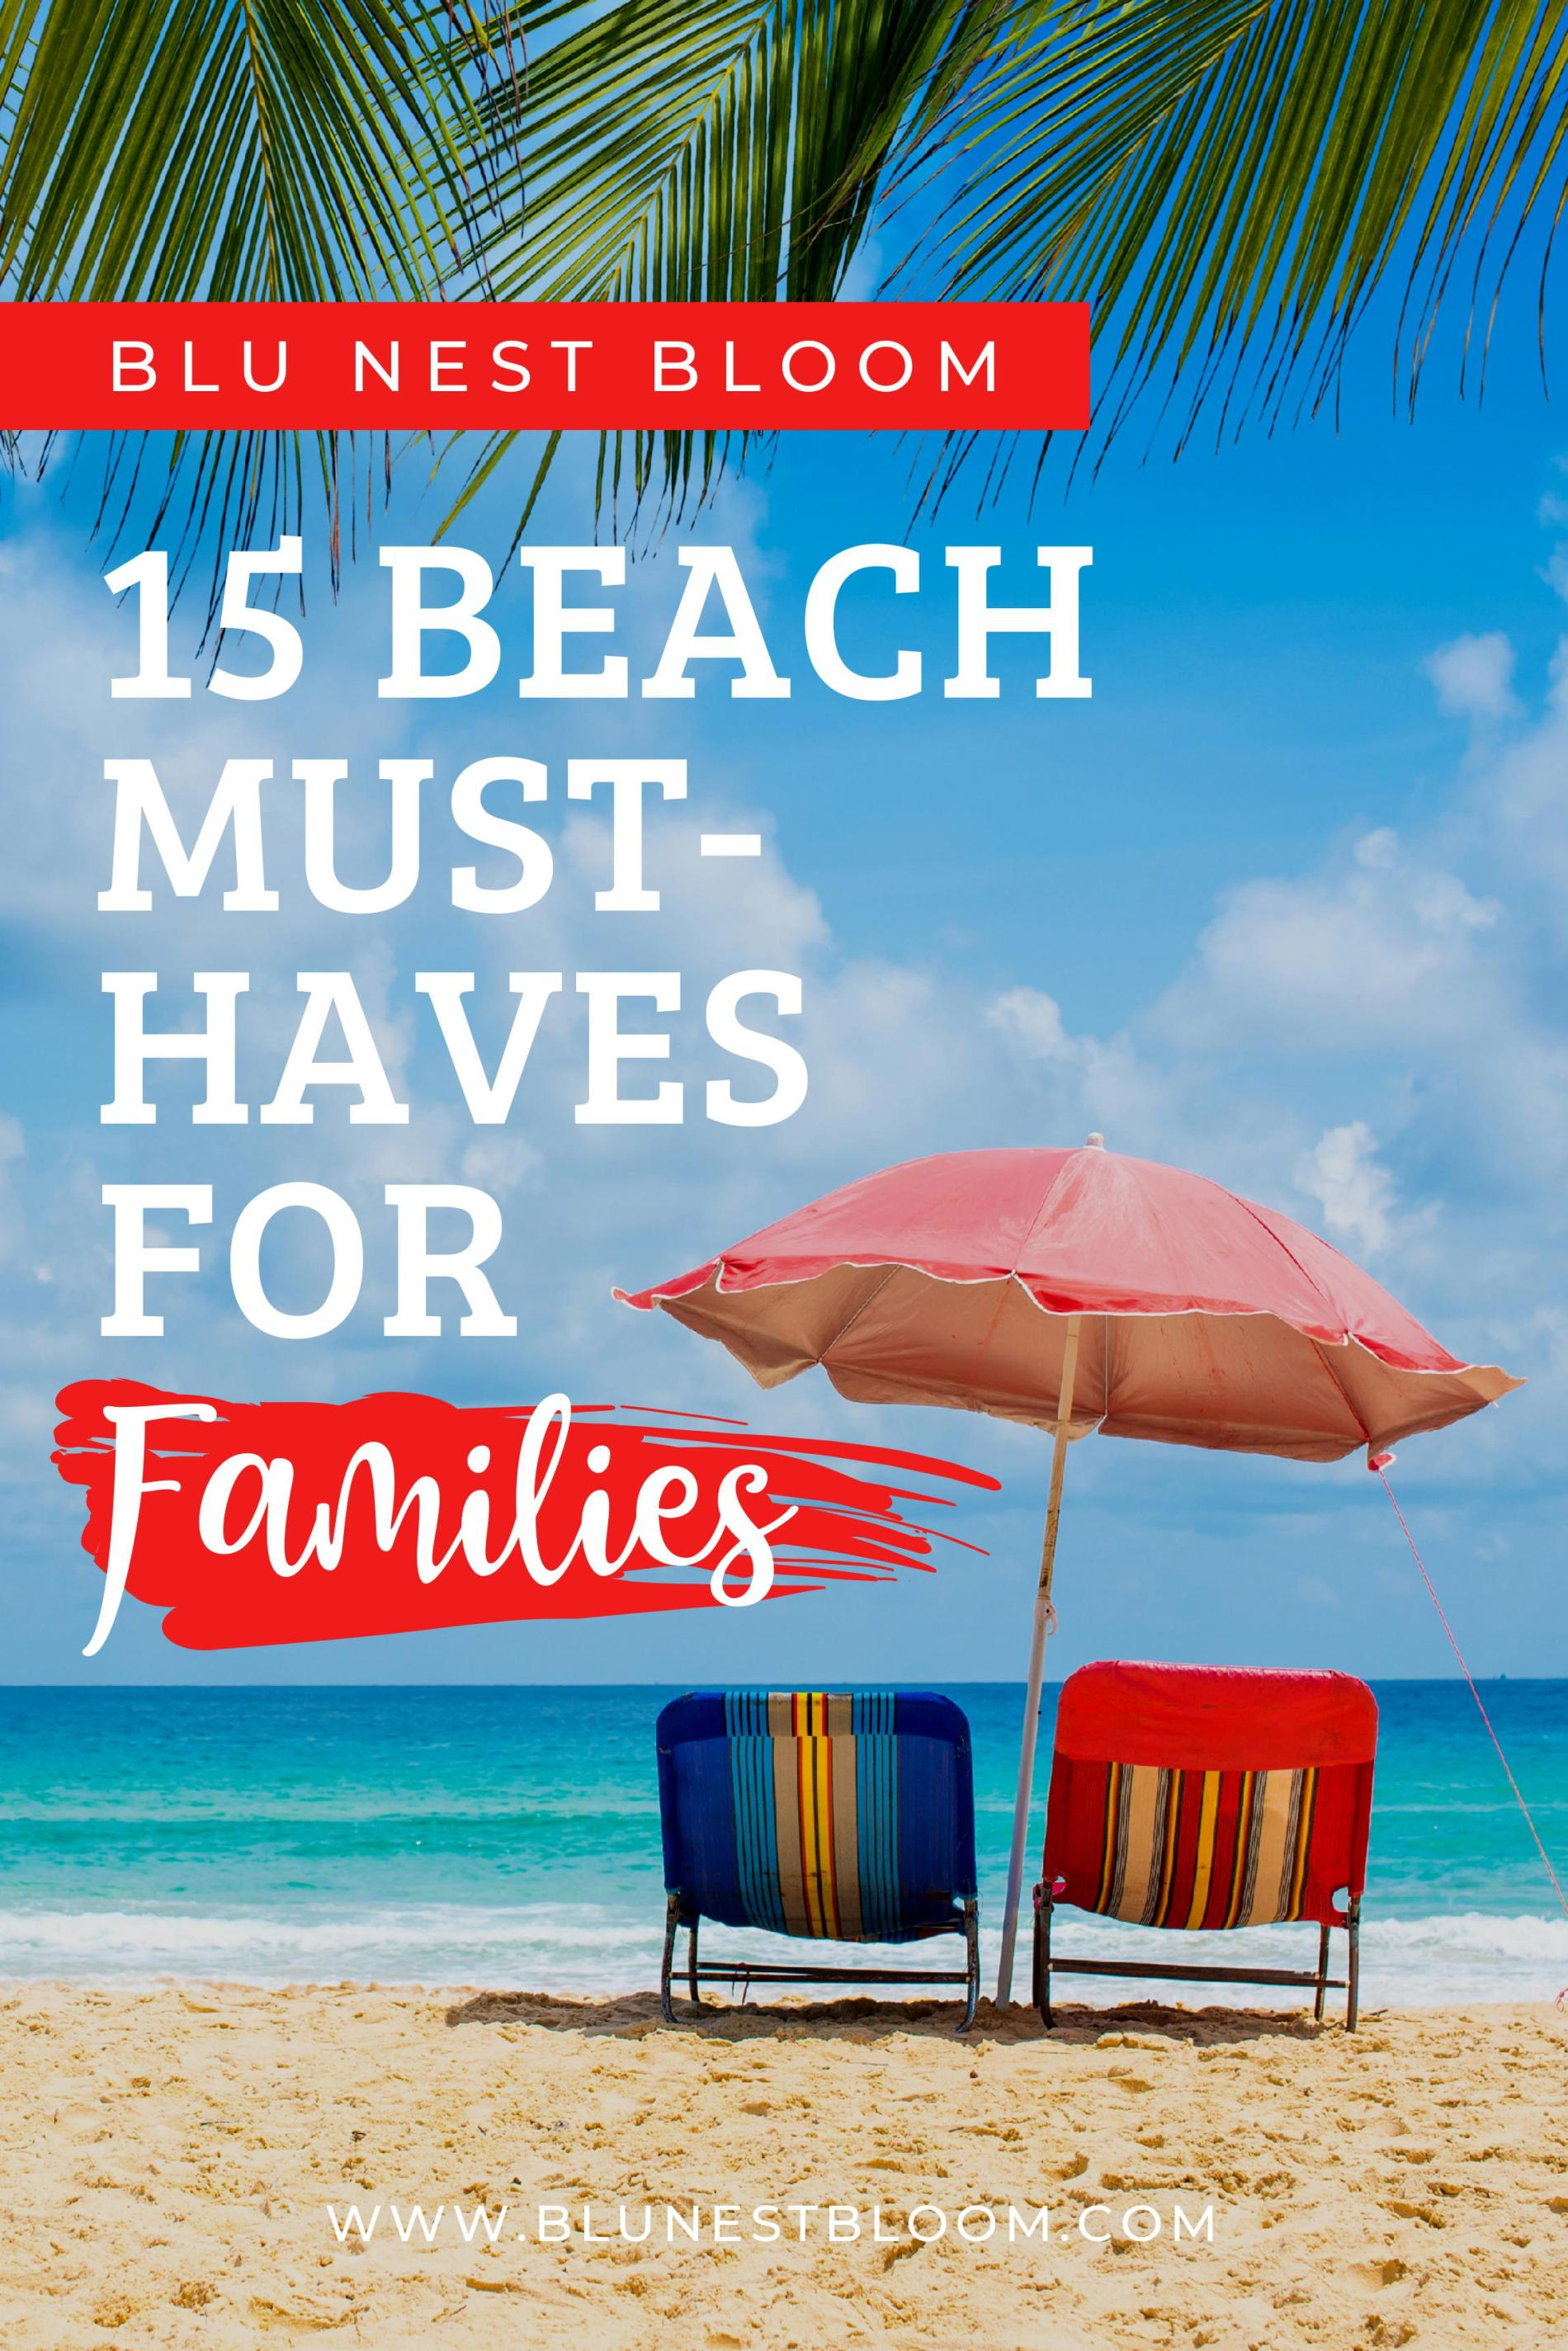 15 Beach Must-Haves For Families